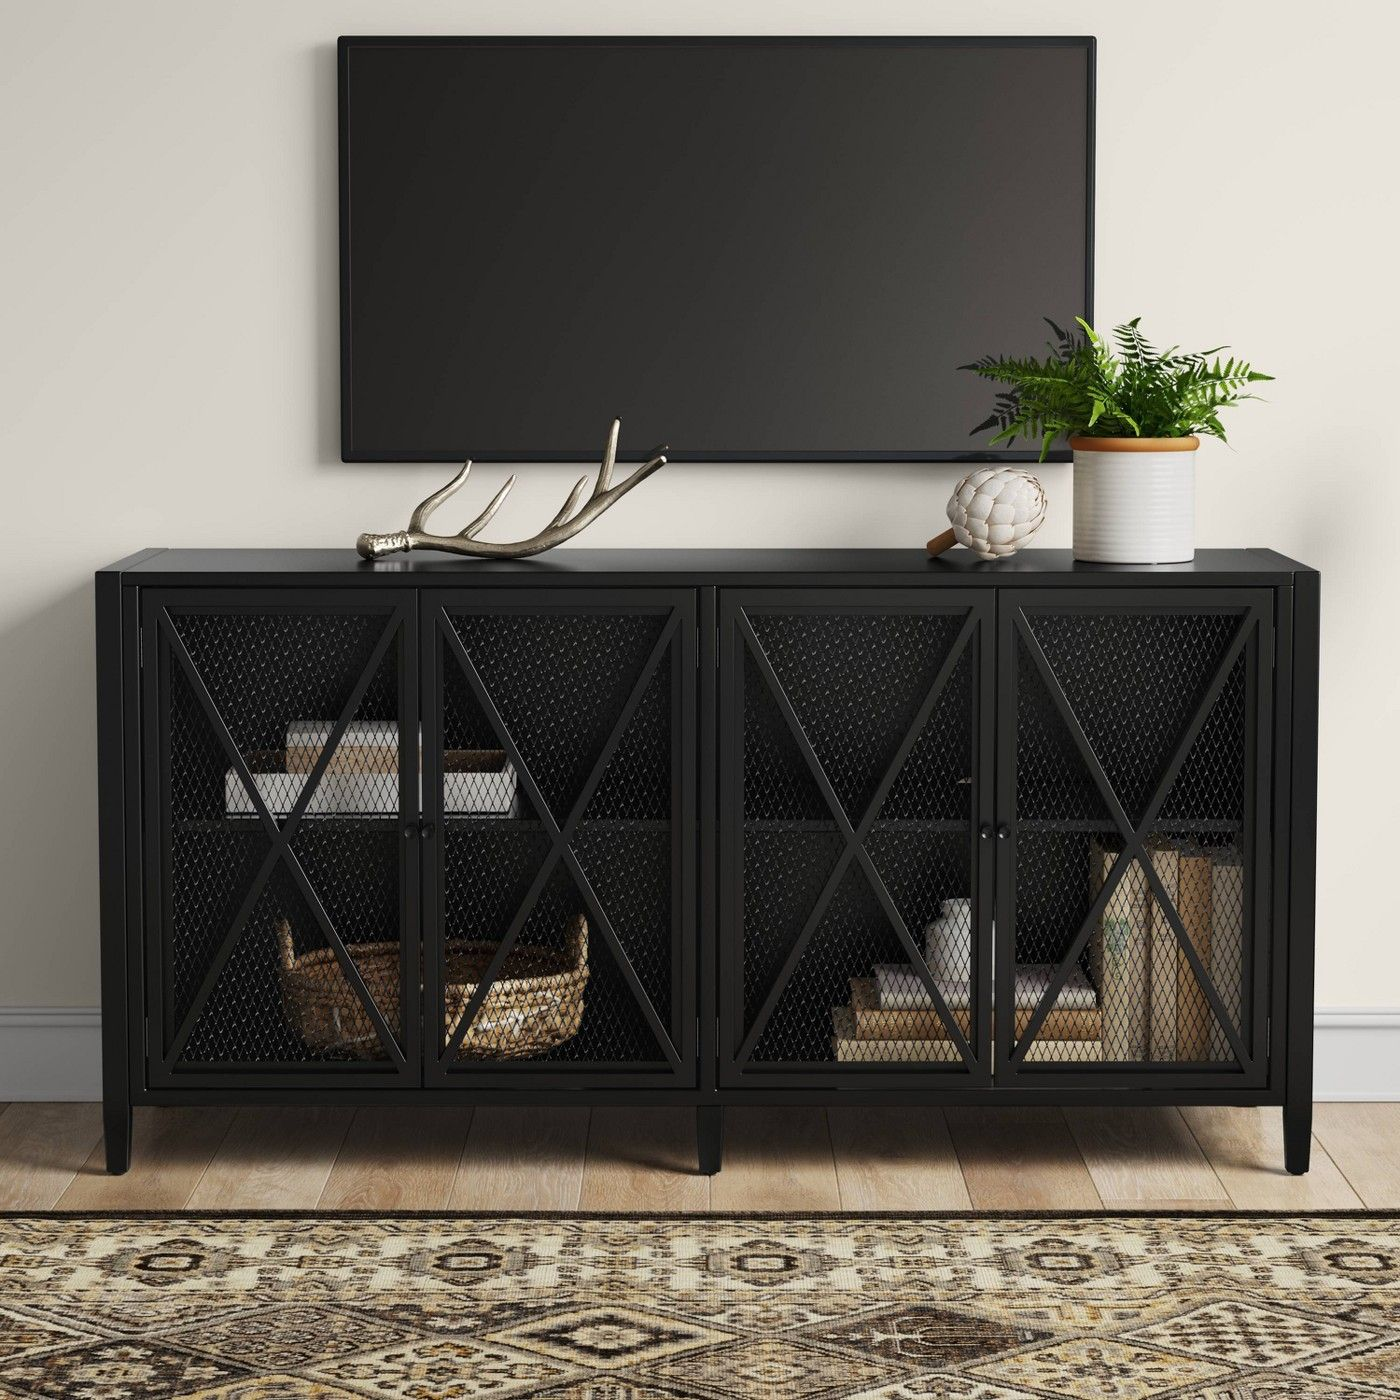 Fairmont Metal Tv Stand With Storage Black Threshold Metal Tv